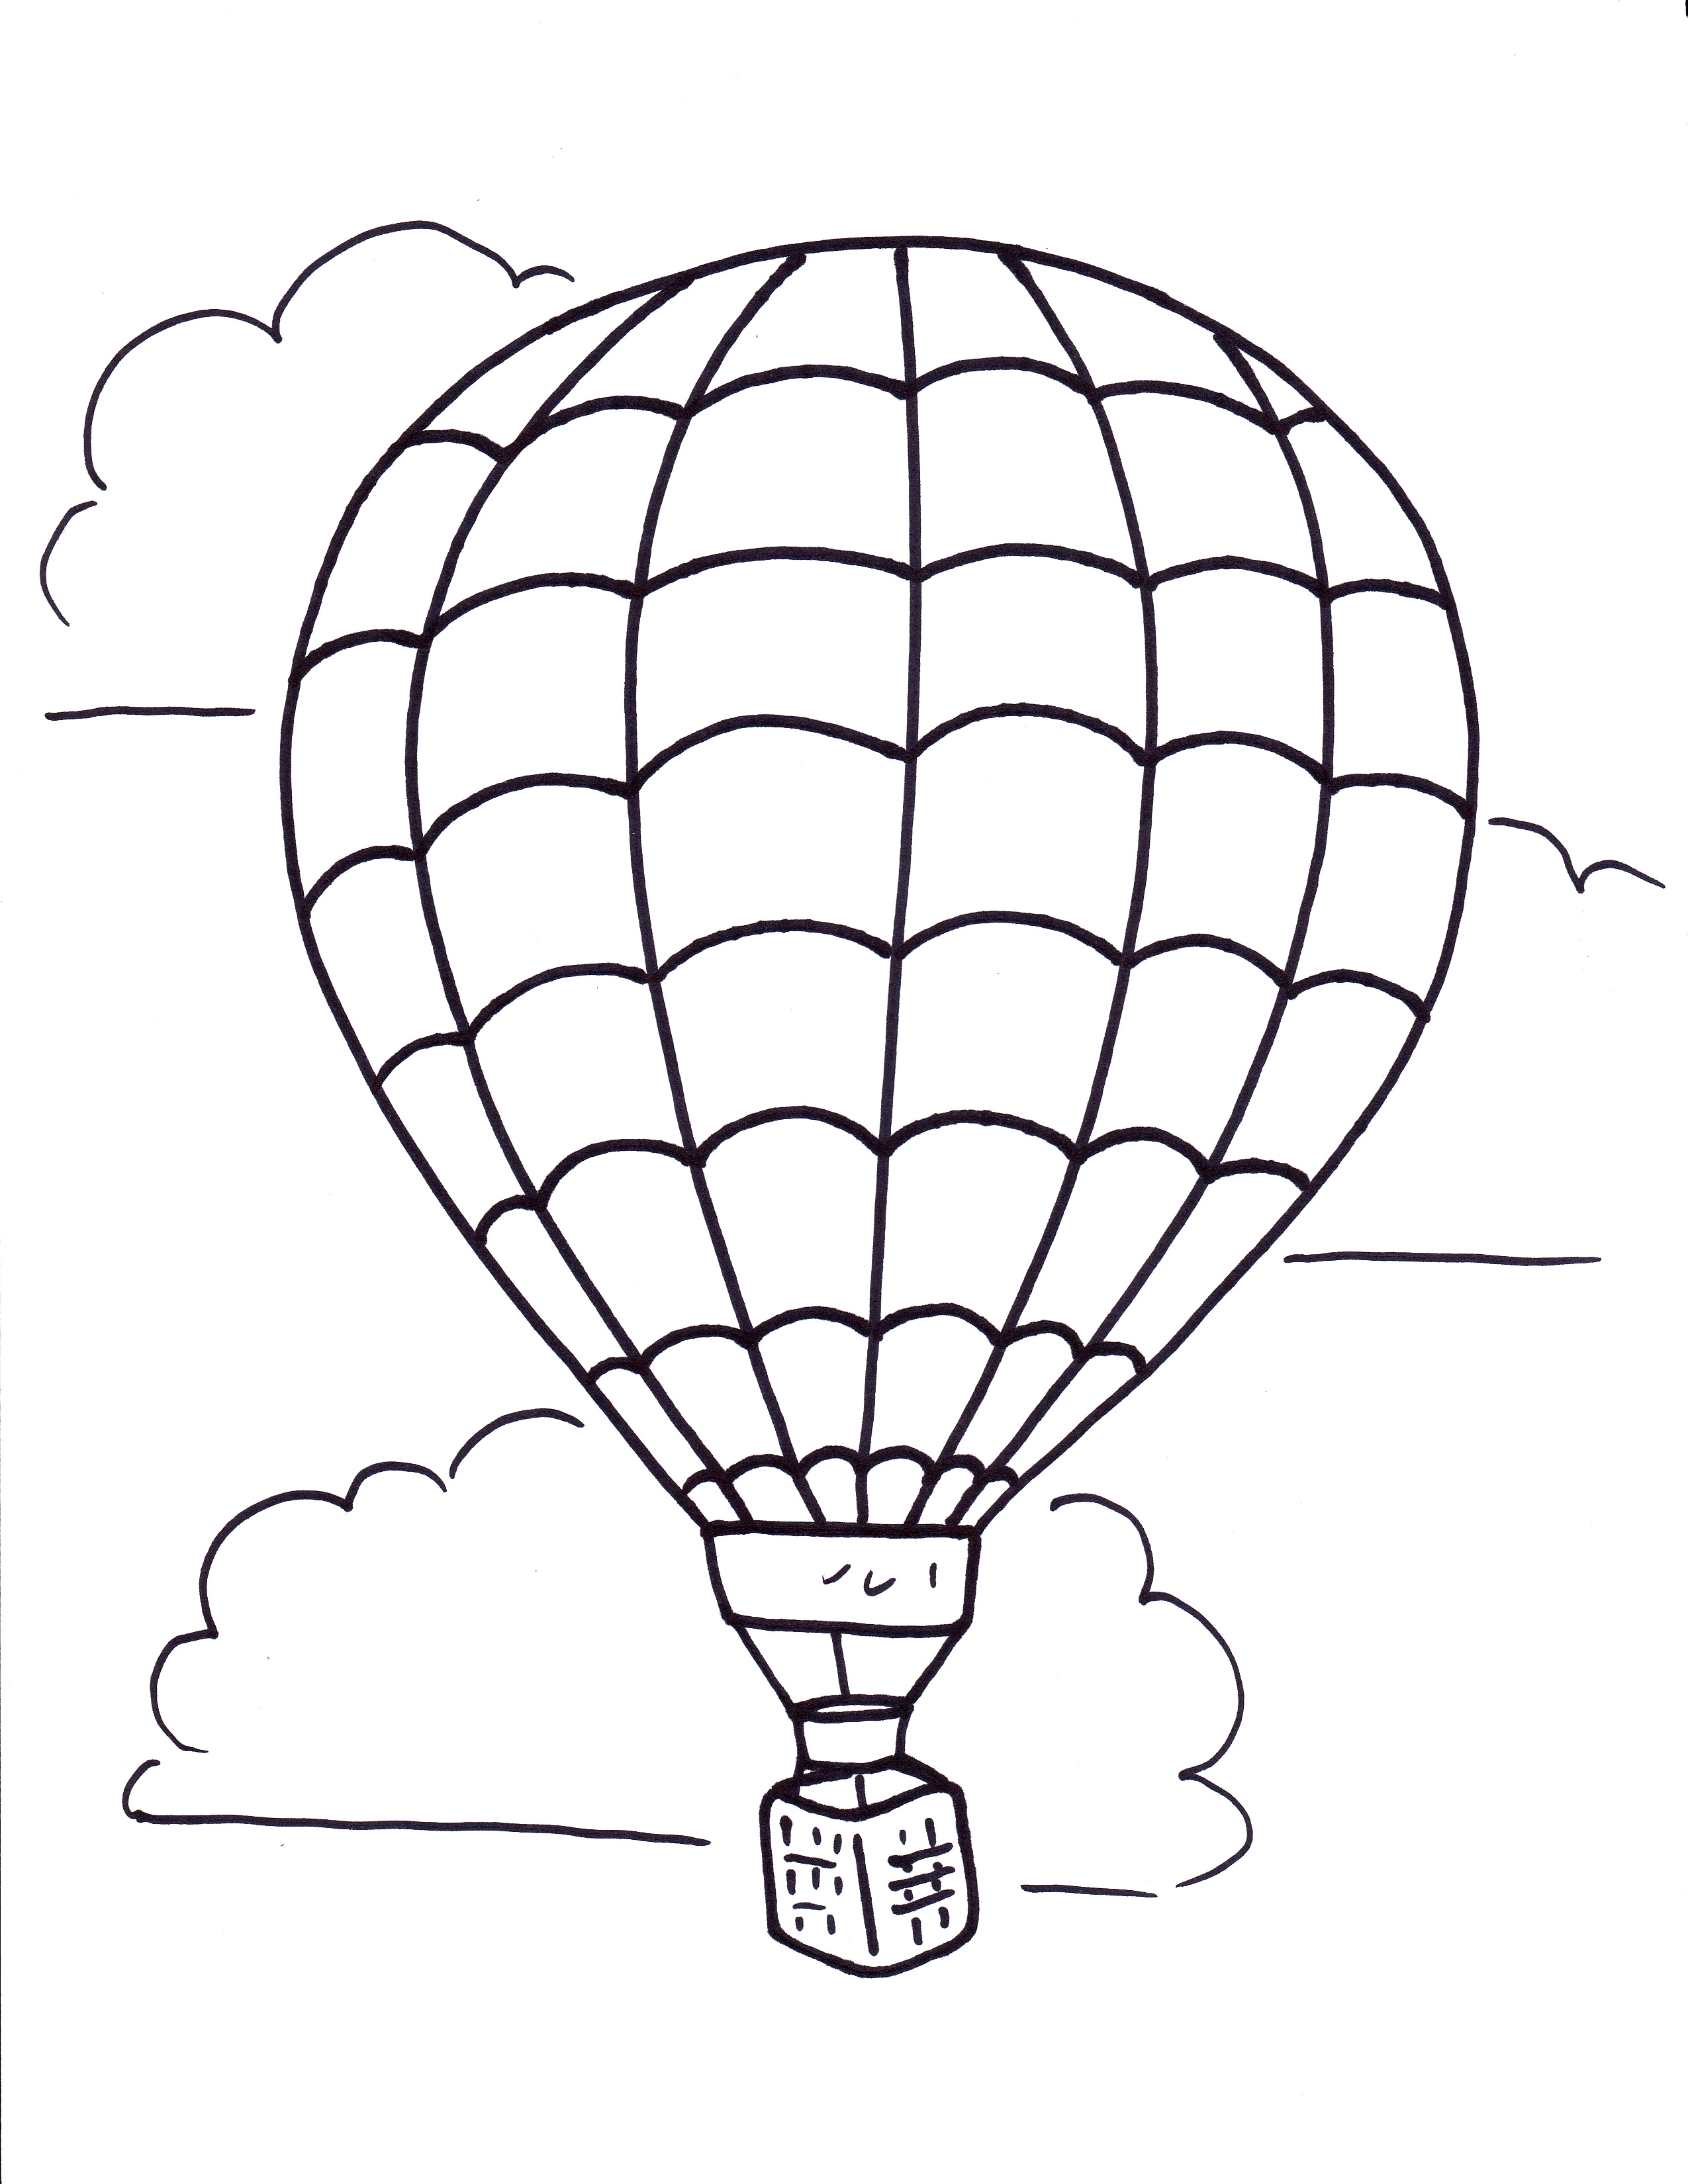 Air clipart black and white vector library Hot air balloon black and white related hot air balloon coloring ... vector library